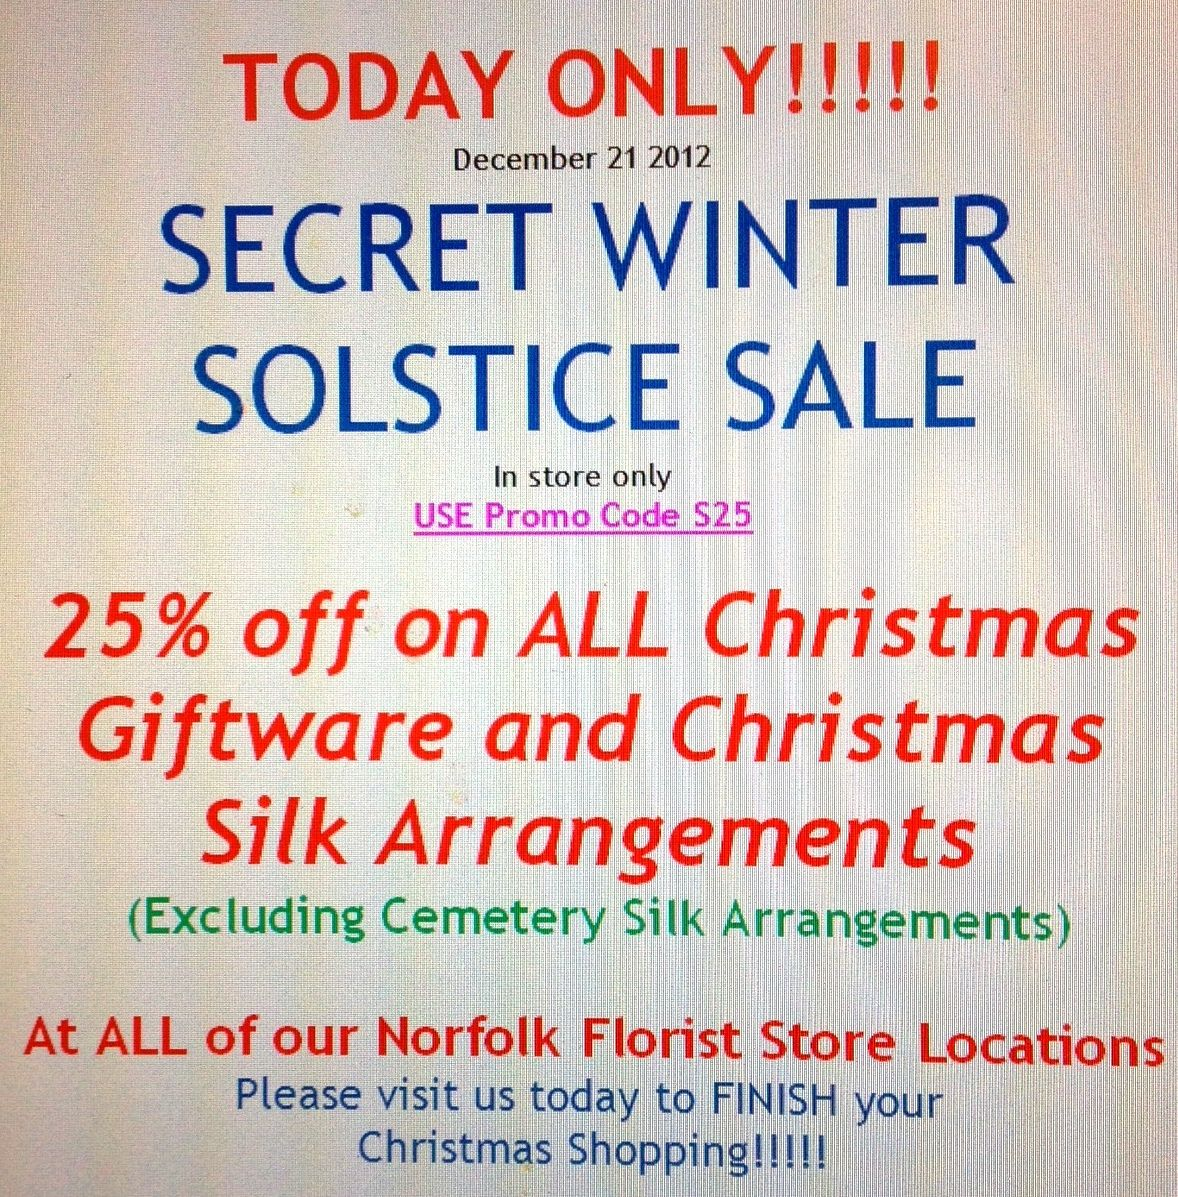 Secret Winter Solstice Sale At All Of Our Norfolkm Florist Stores Today 12 21 12 Only Come Finish All Your Christmas Shopping Beach Flowers Winter Solstice